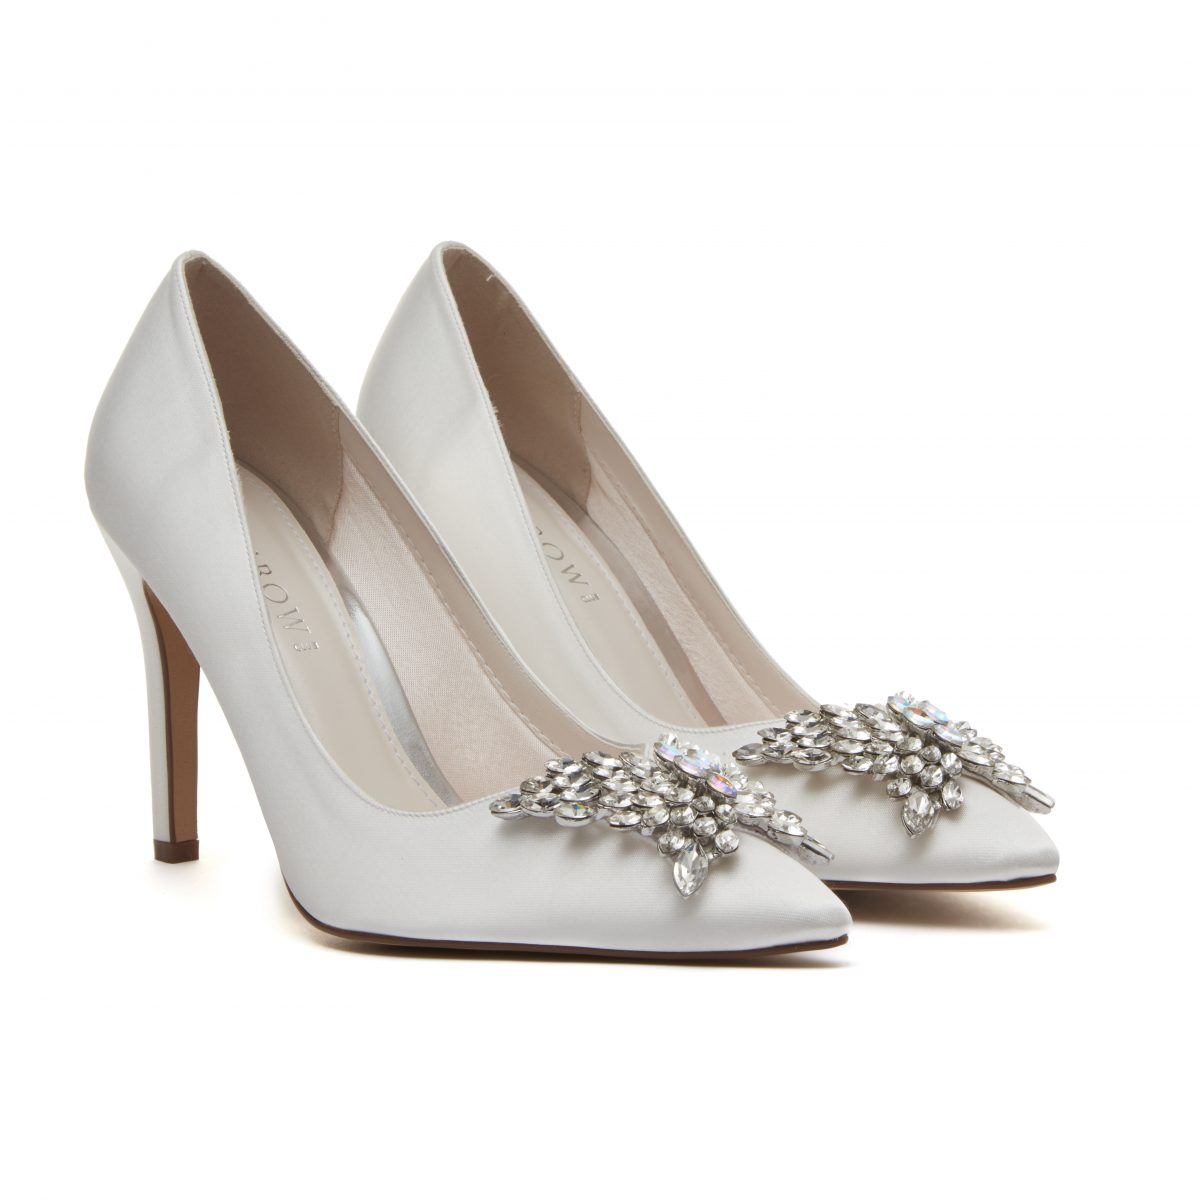 Rainbow Club Nelly - Ivory Satin Court Shoe 1